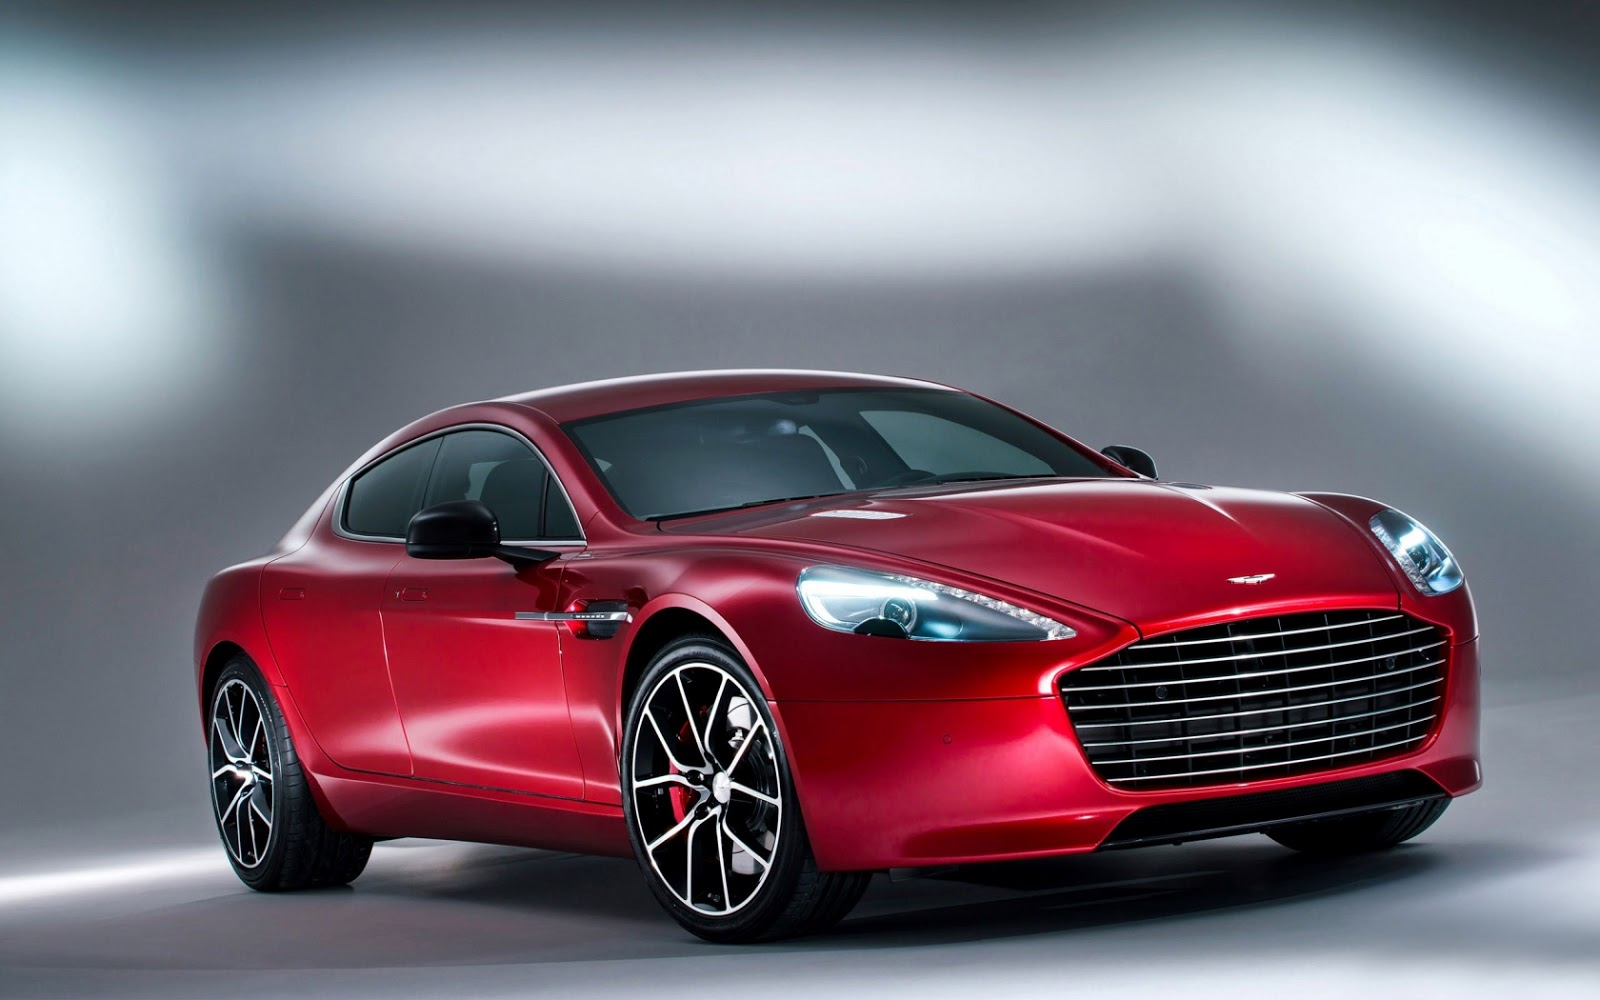 Download HD Wallpaper of Aston Martin DB9 Coupe 1600x1000